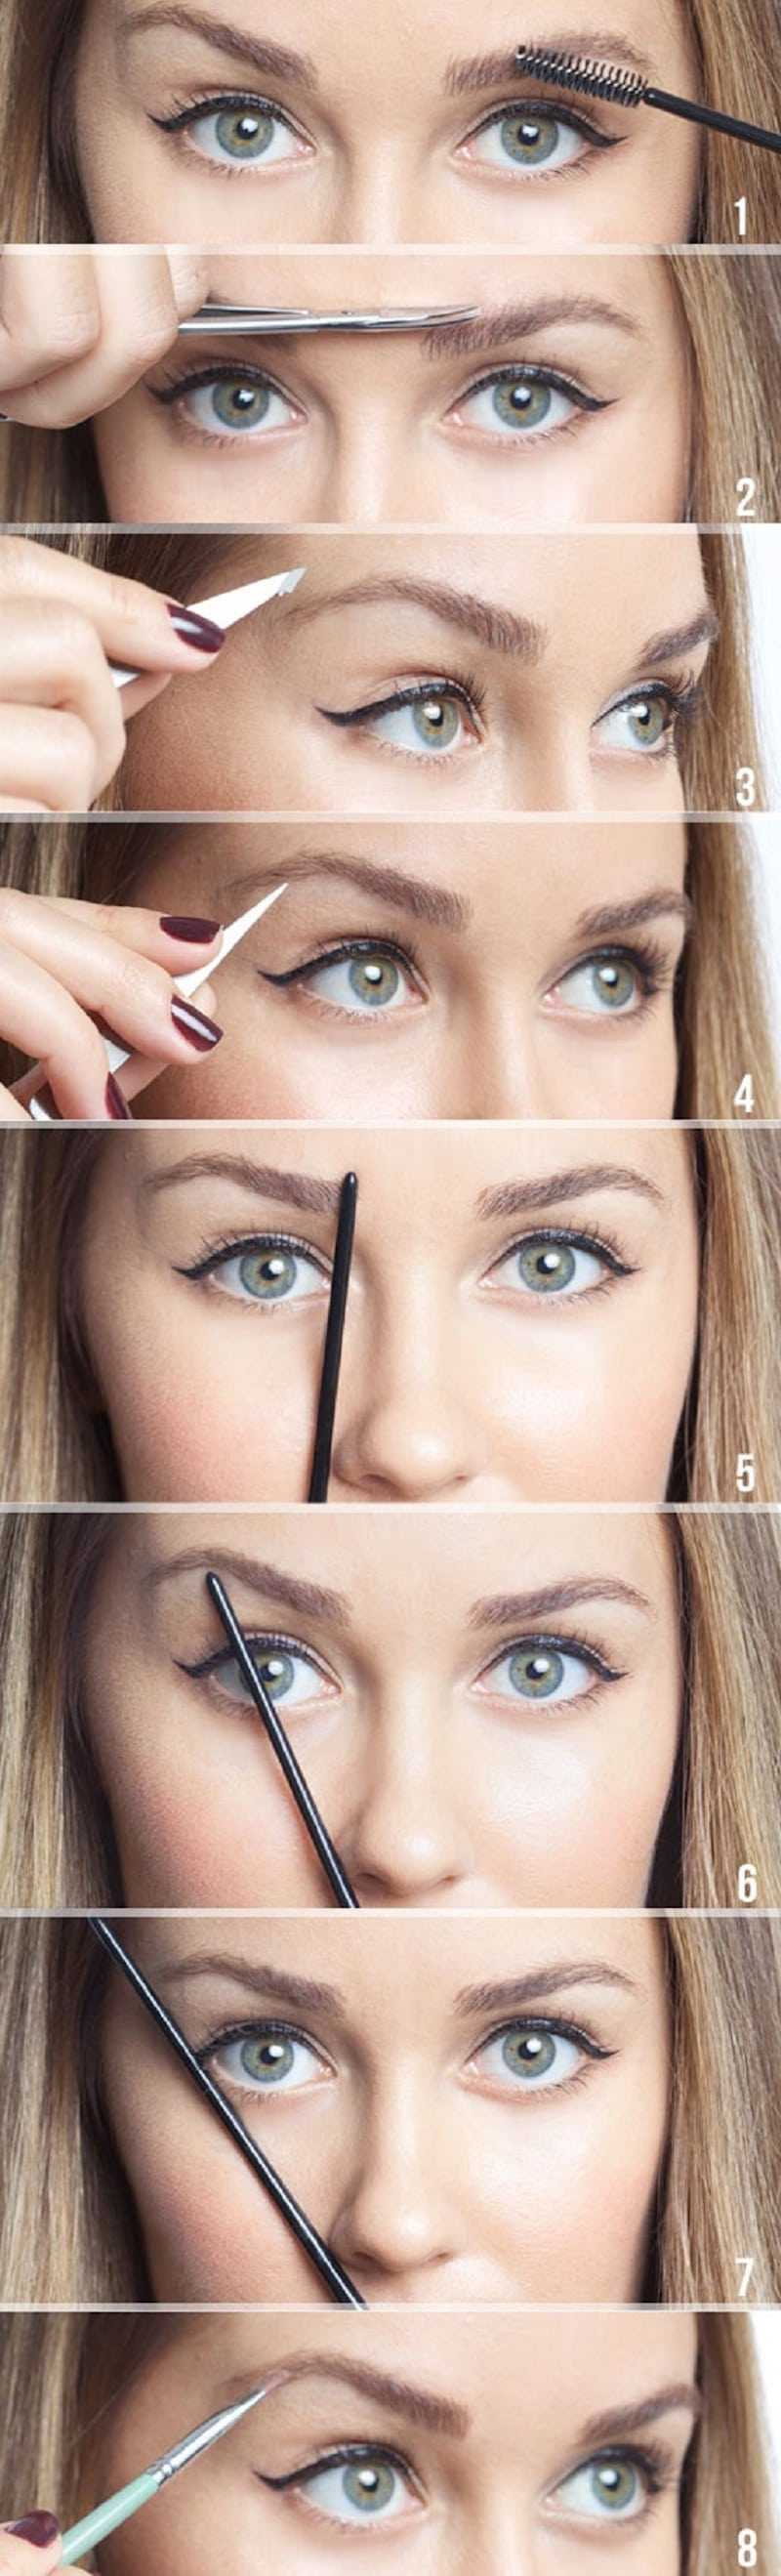 How To Shape Your Brows To Fit Your Face